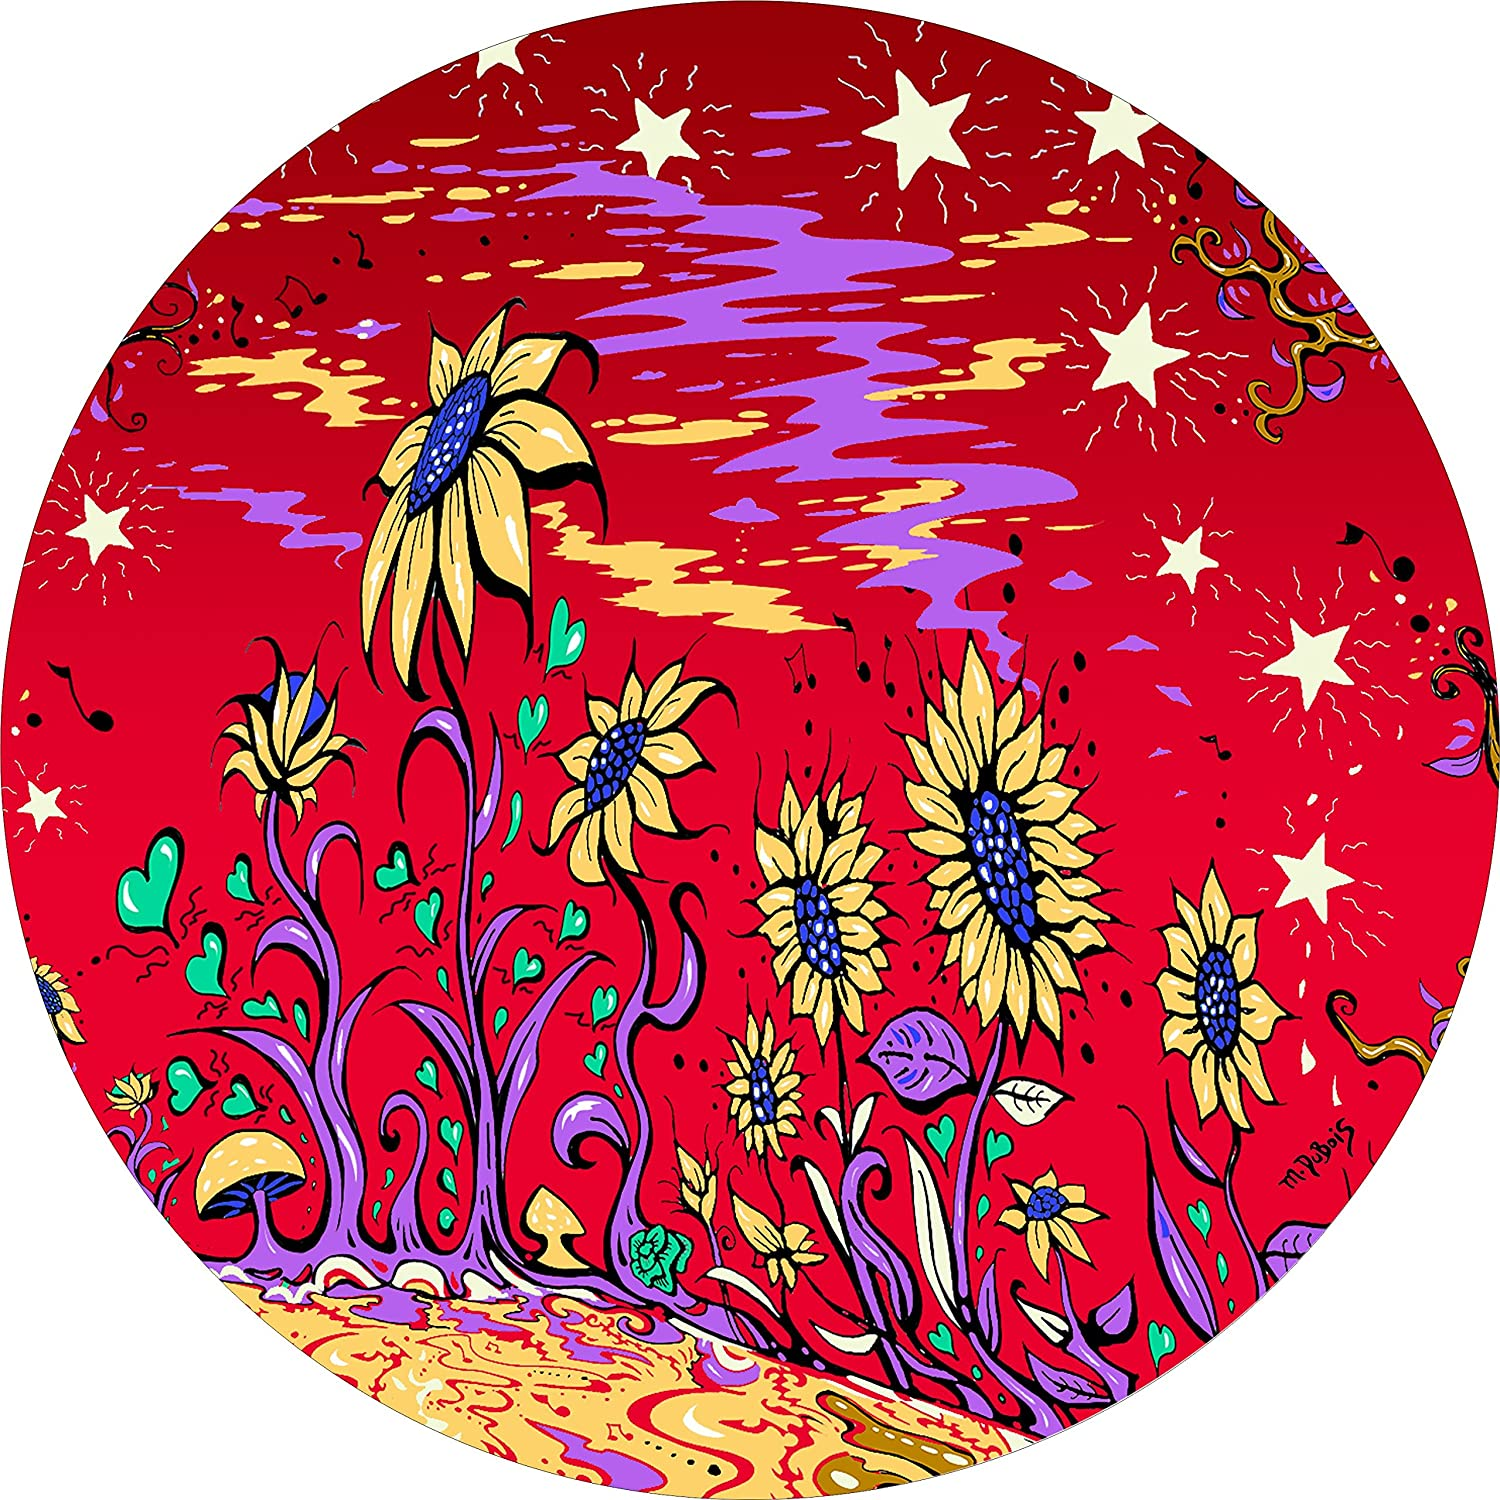 Sunflower Field RED Spare Tire Cover for 205/75R14 Jeep RV Camper & More(Select Popular Sizes in Drop Down menu or Contact us Dubois(c) TireCoverCentral